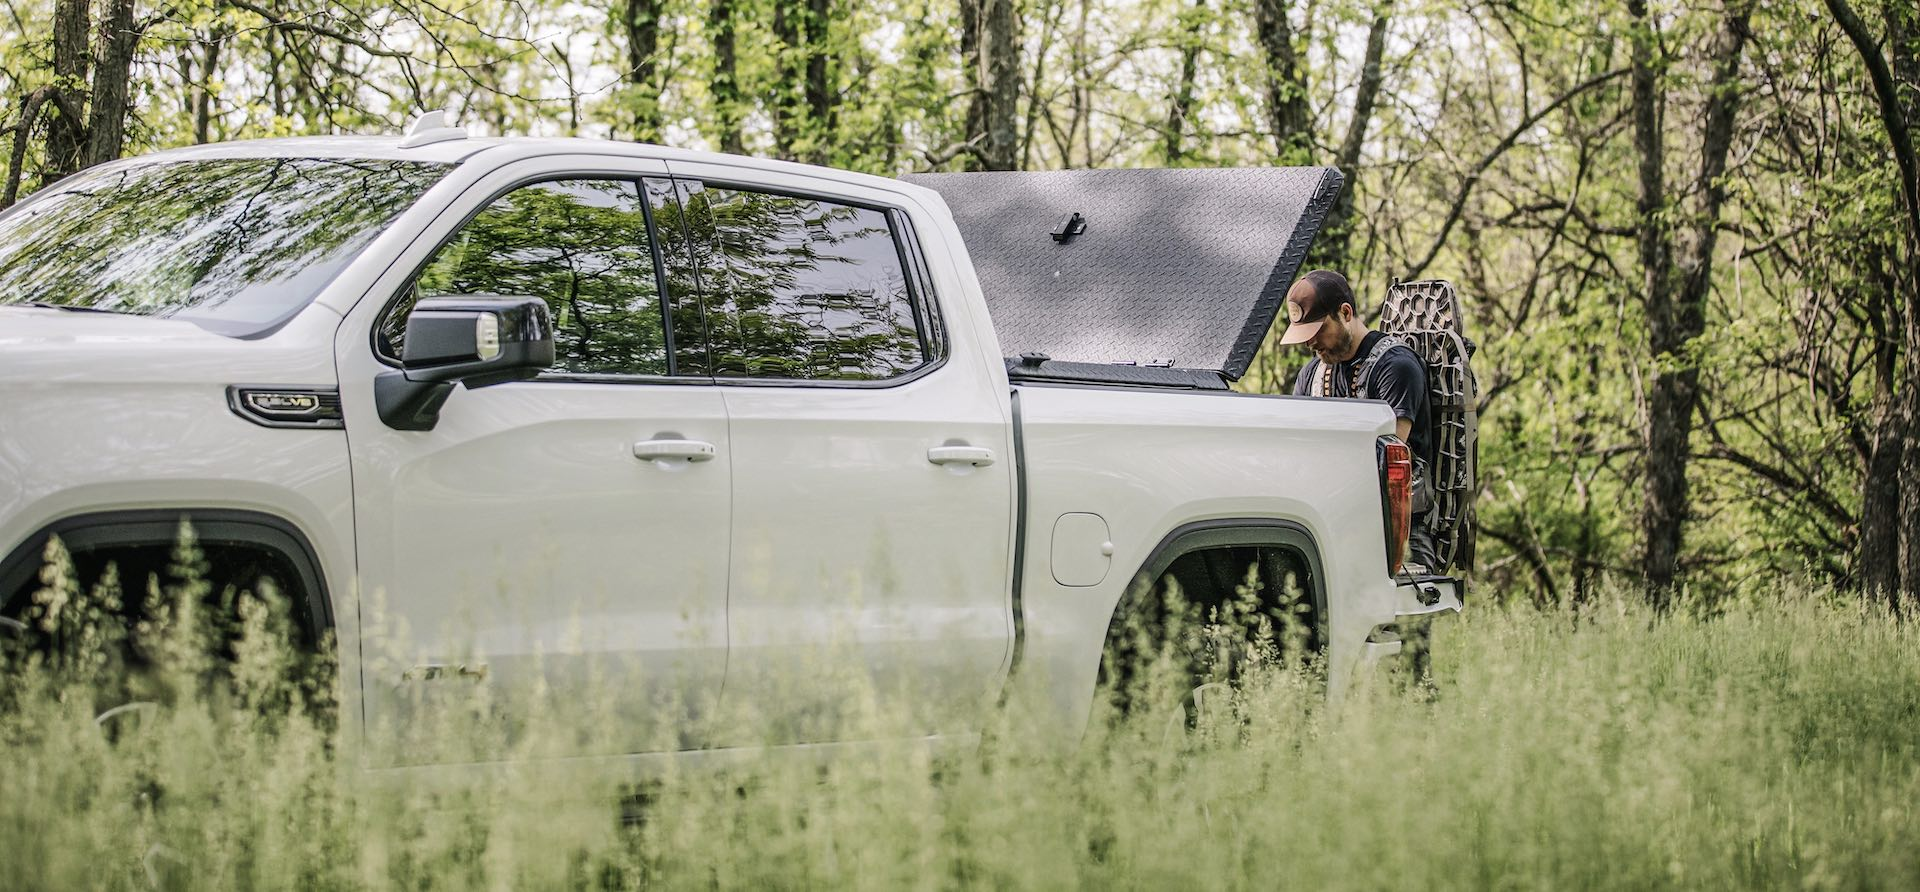 Man with tree stand, DiamondBack SE metal bed cover, and GMC Sierra